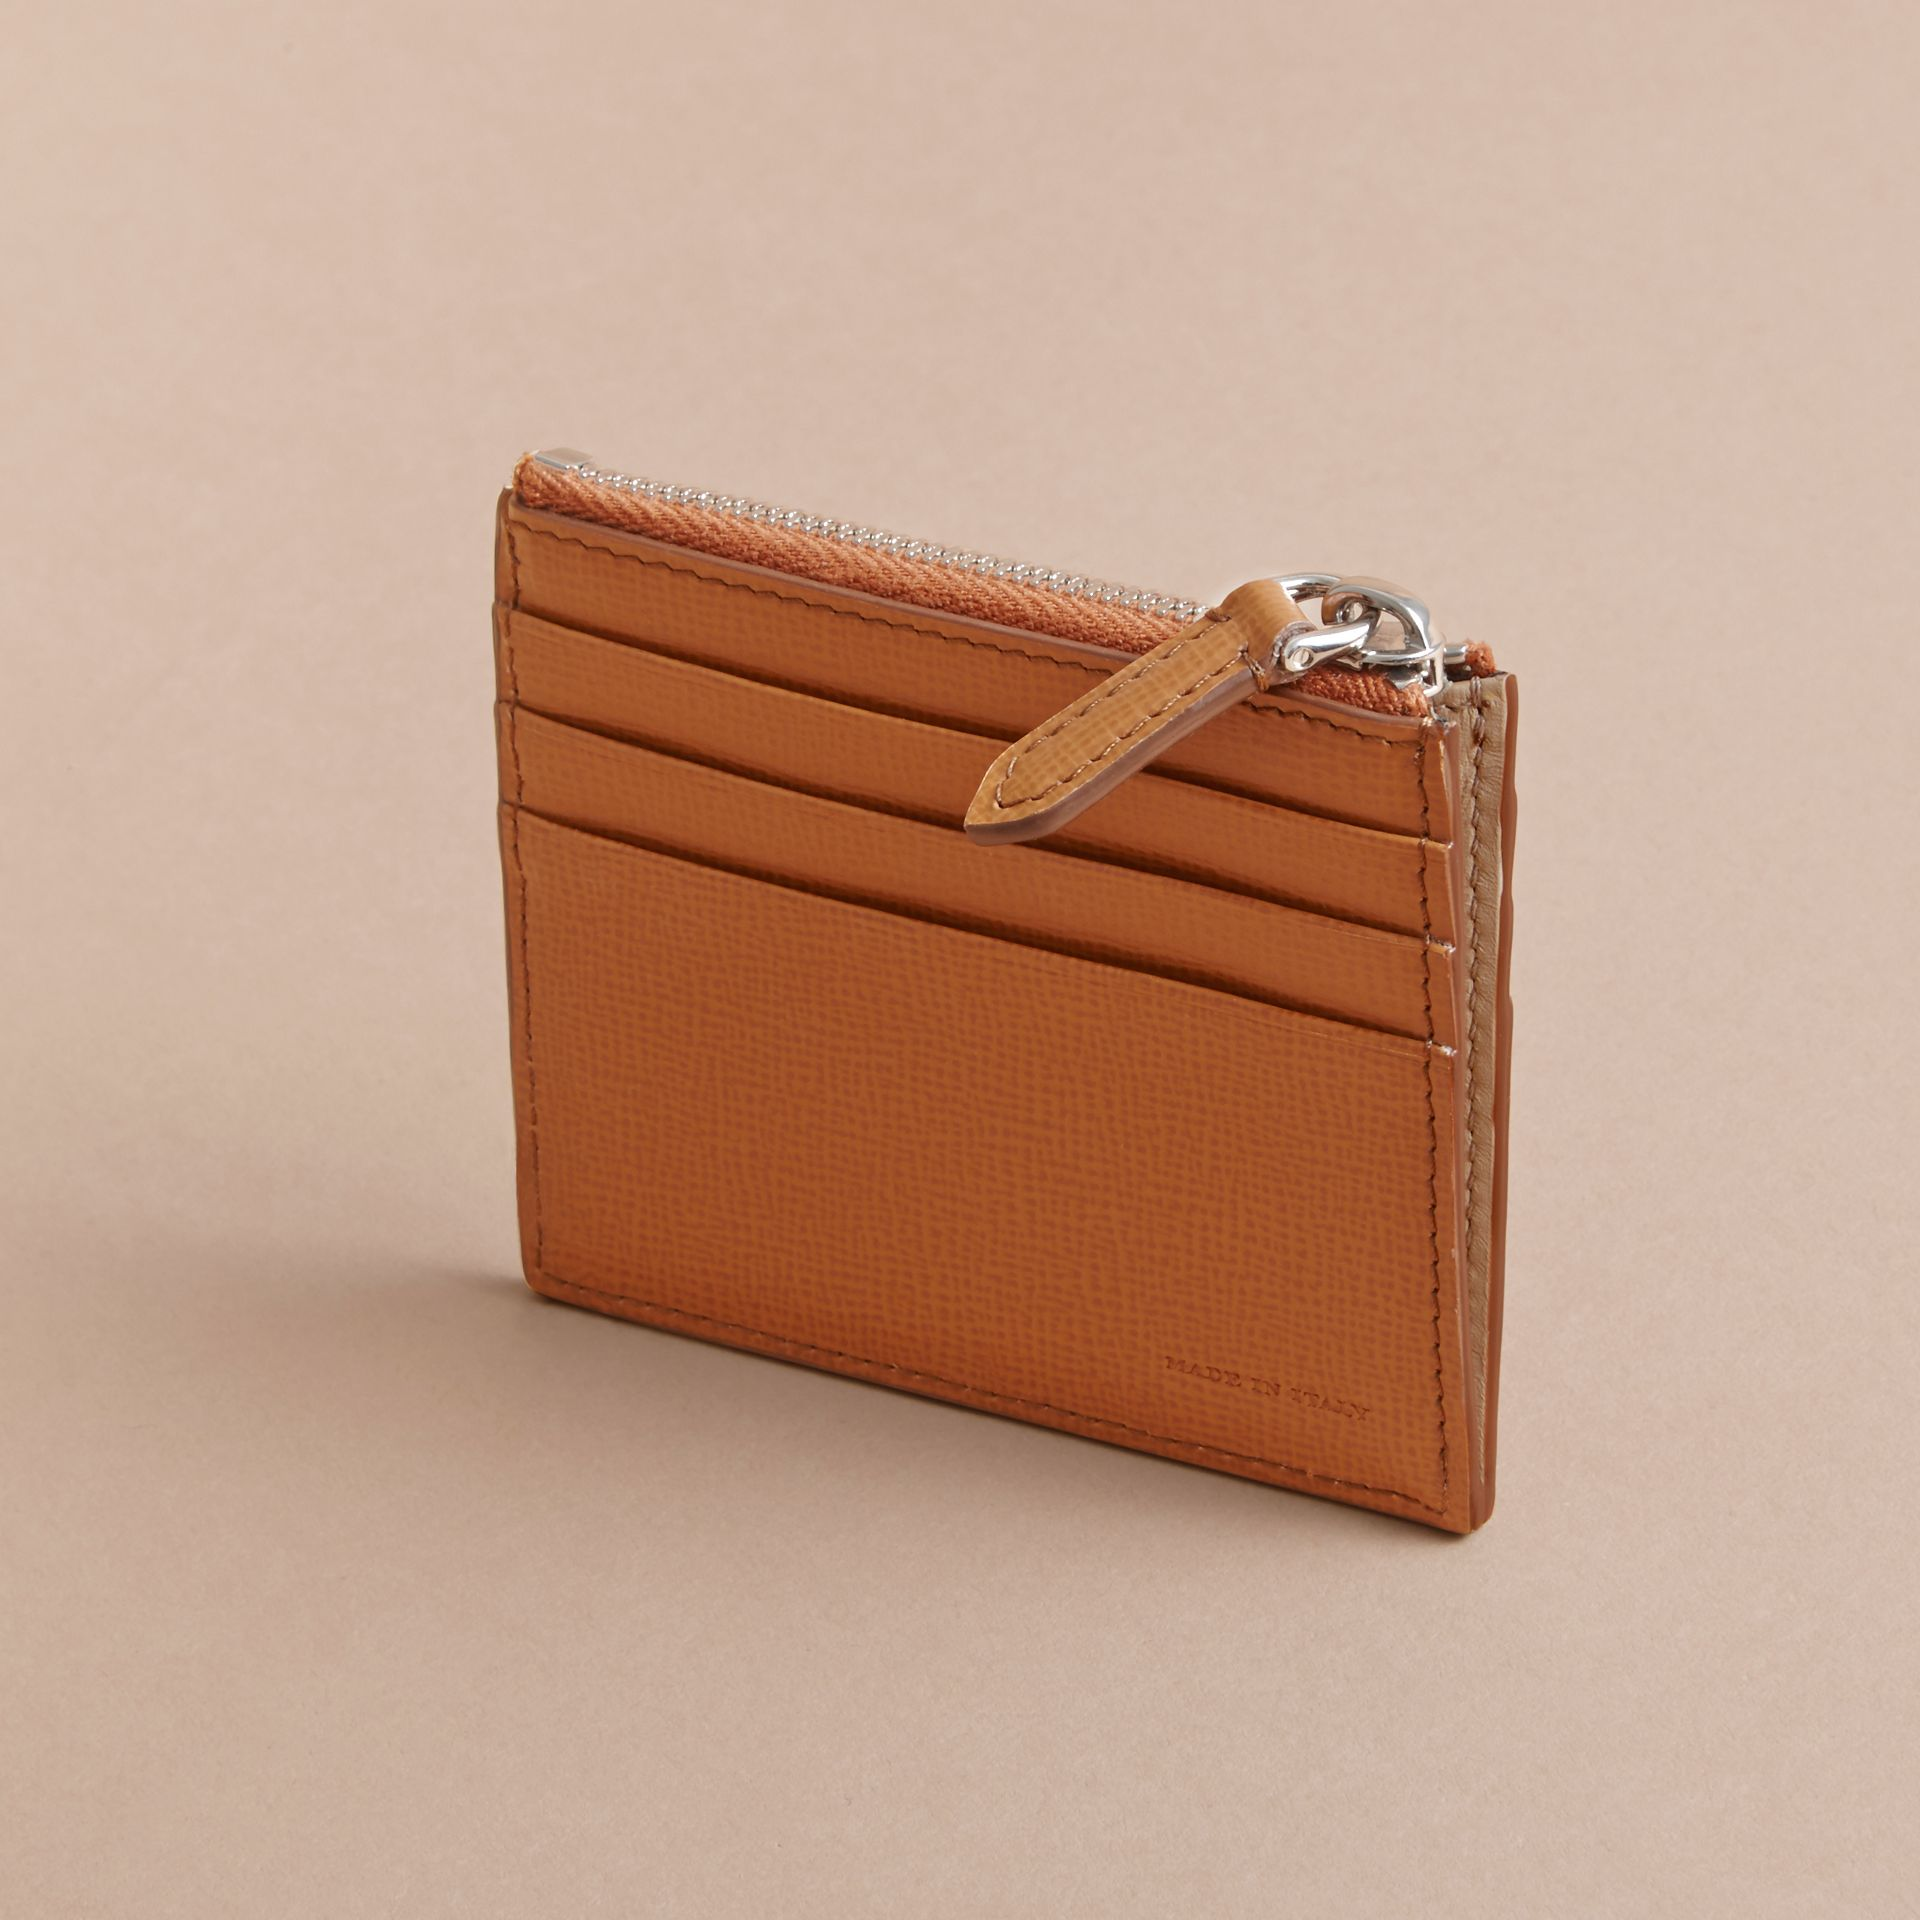 London Leather Zip-top Card Case in Tan | Burberry - gallery image 3